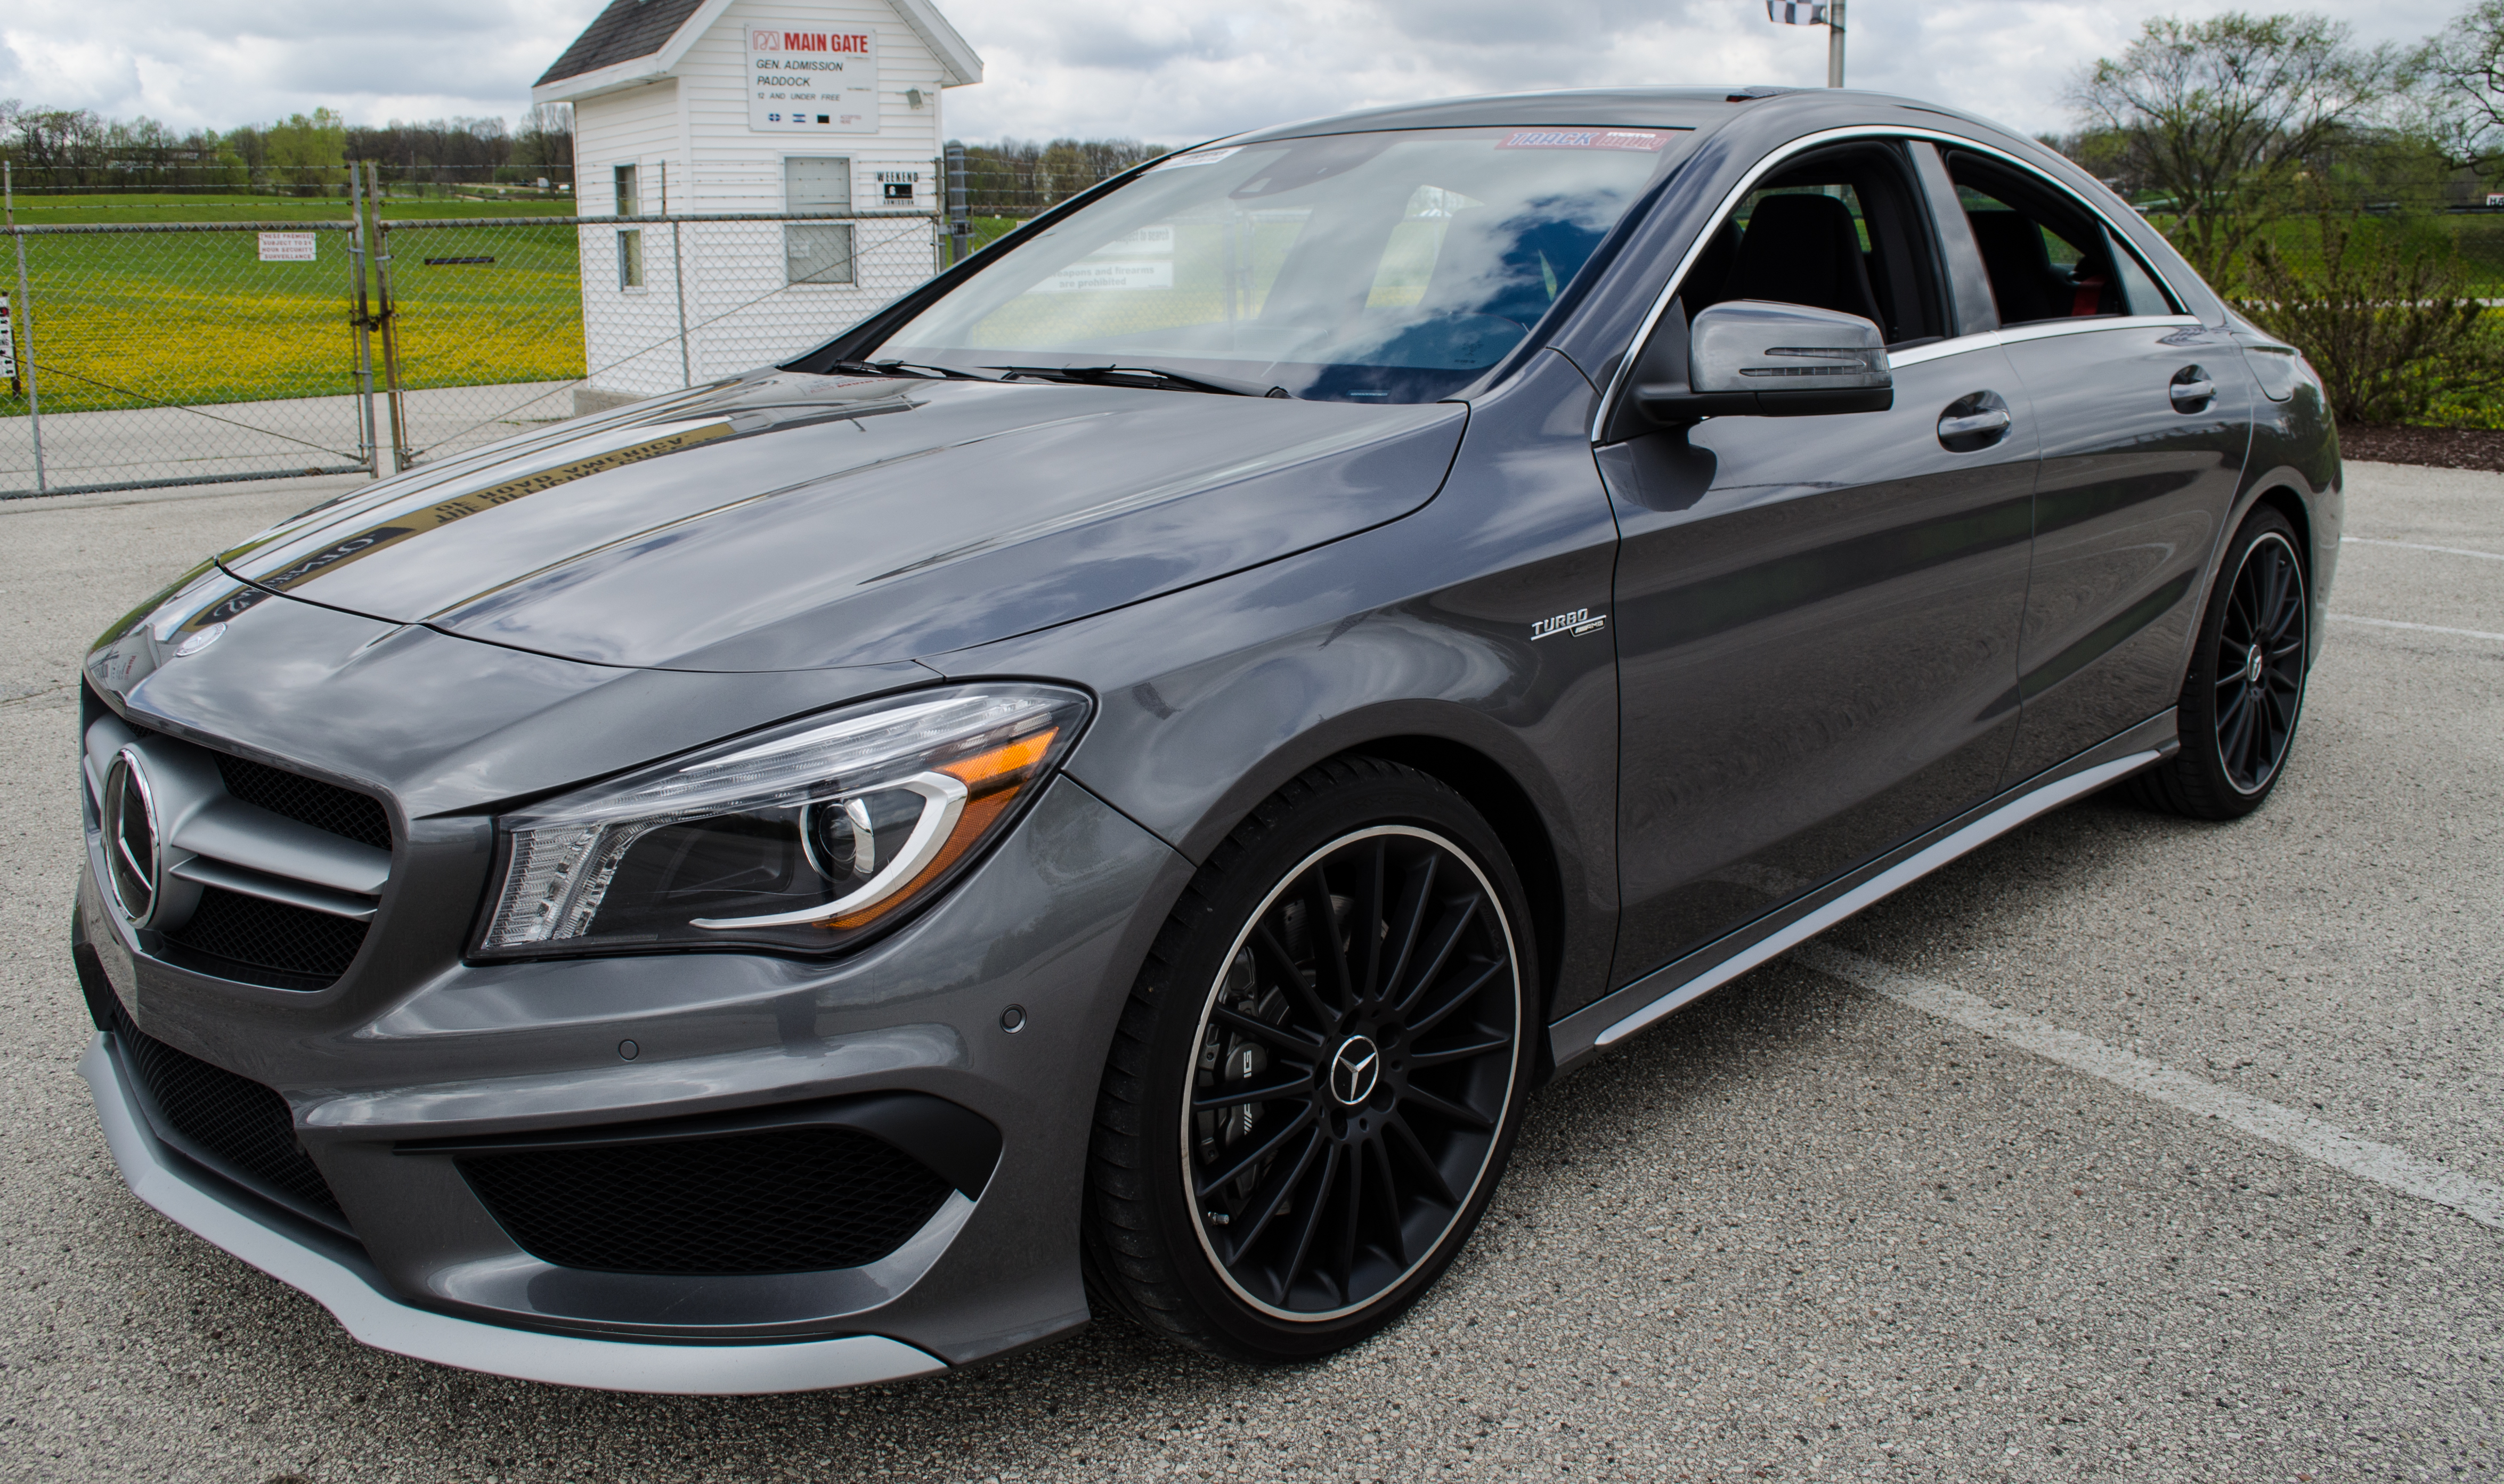 2014 Cla45 Amg Review Performance At A Premium Price on rear view camera